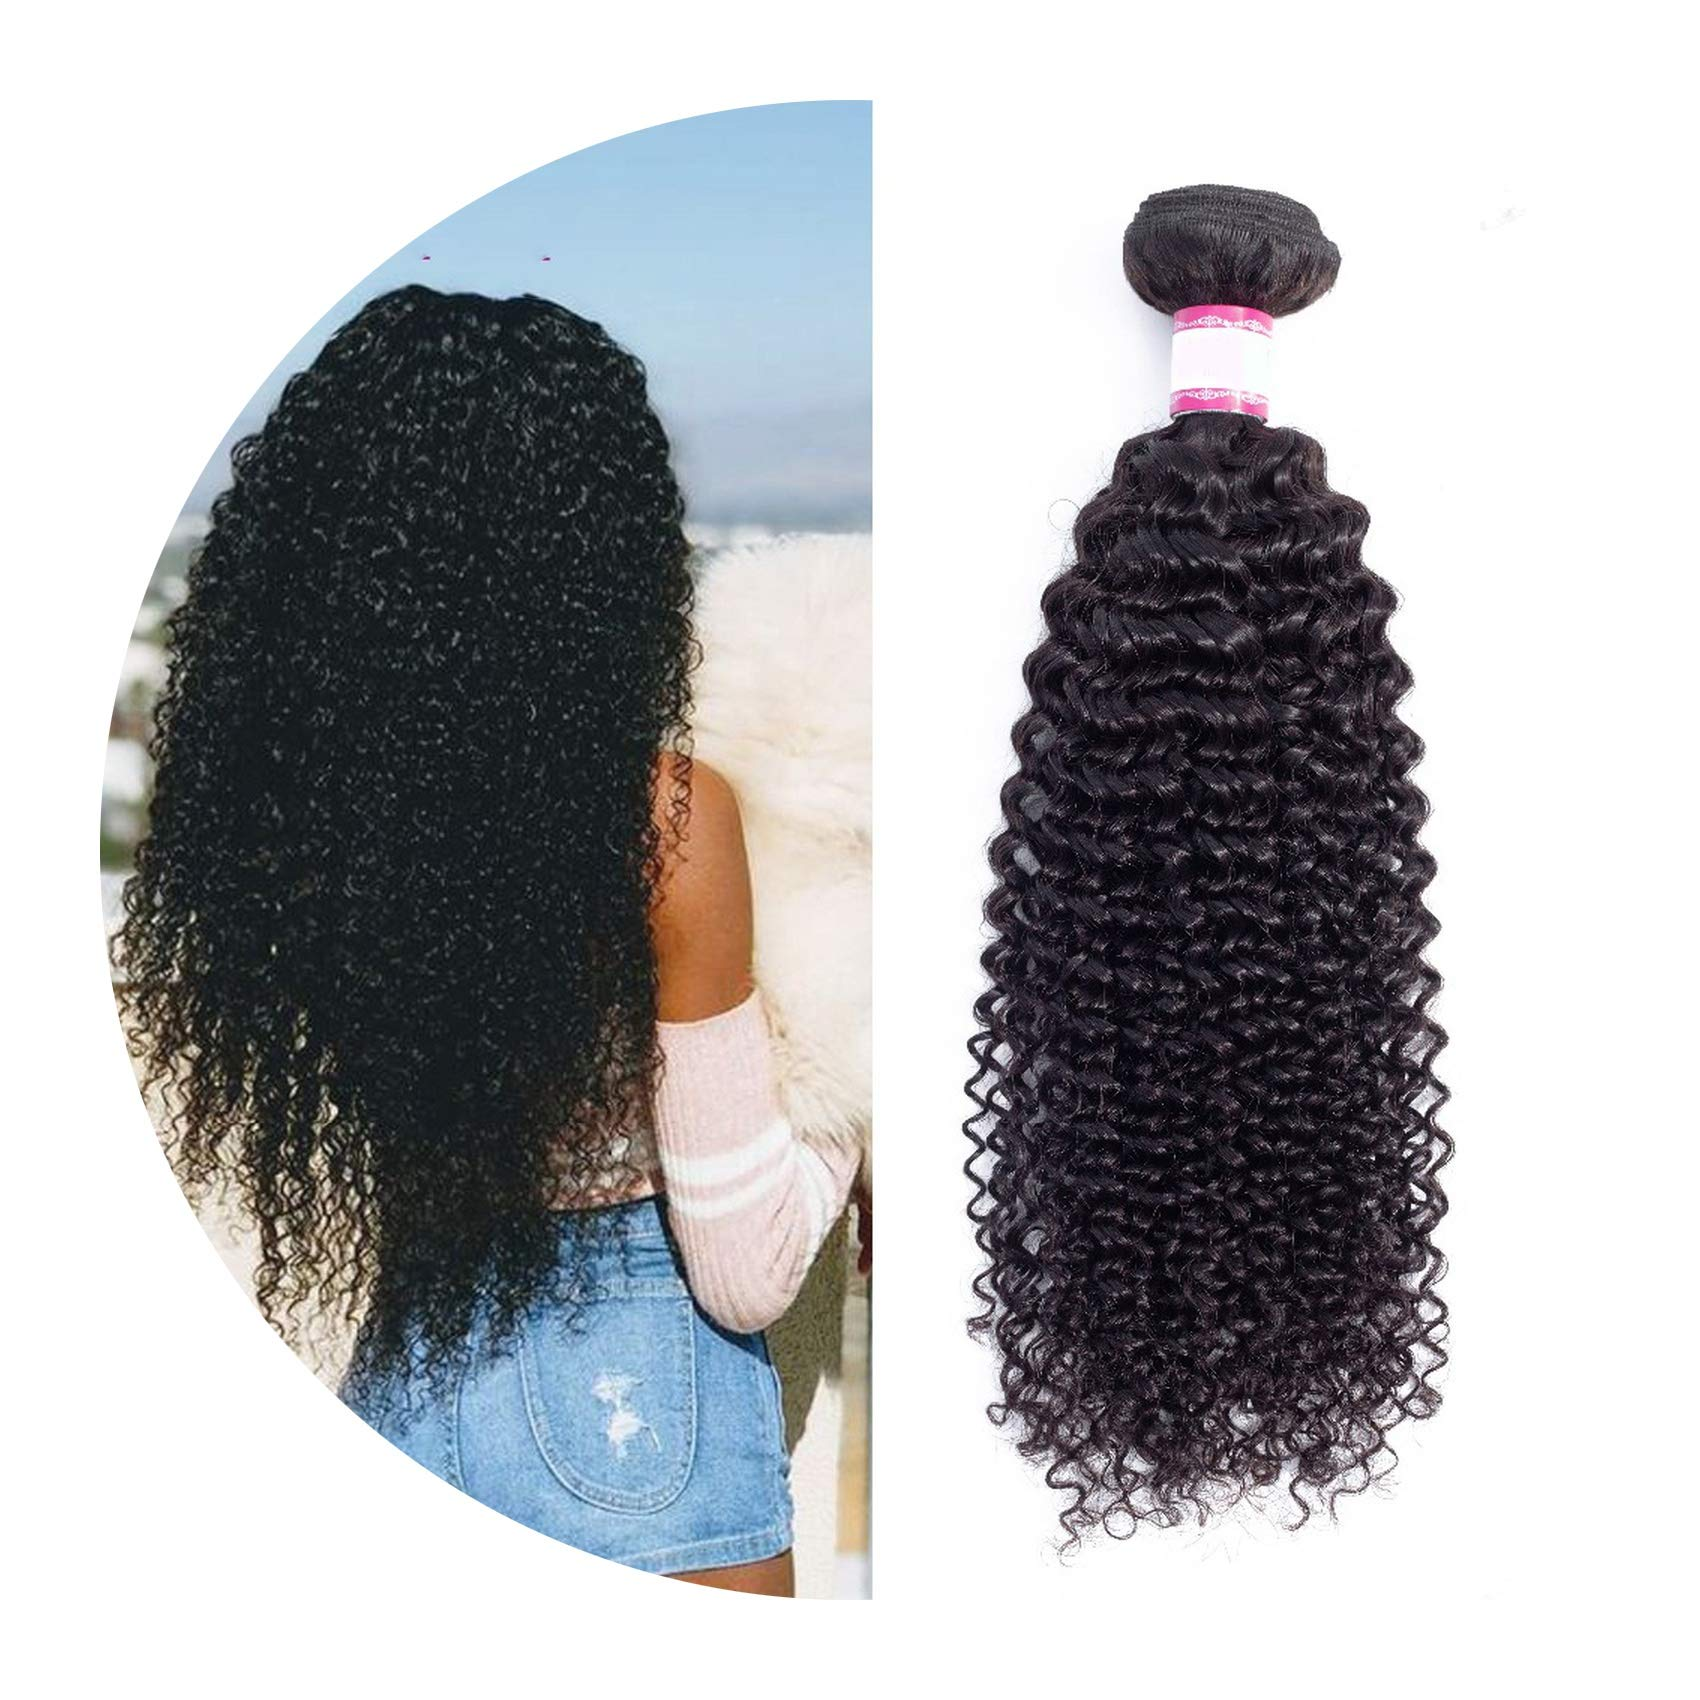 Curly Hair 1/3/4 pc 8-26inch Brazilian Hair Weave Bundles Non Remy Human Hair Extensions,22 22 22,Natural Color,United States by Sparks Fly Shop-hair-extensions